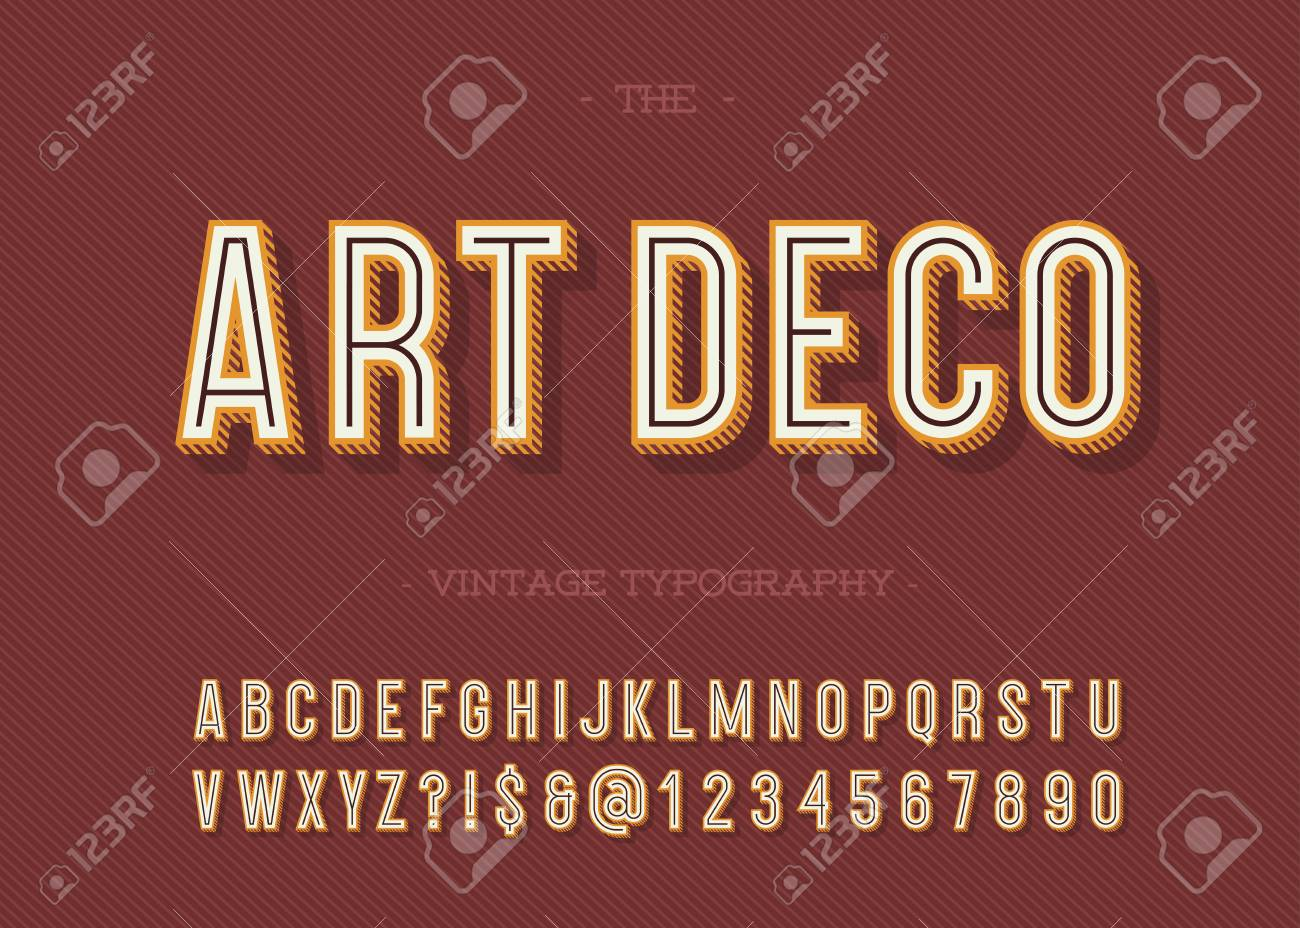 Art Deco Vintage Typography Alphabet Modern Retro Font Sans Serif Style For Party Poster